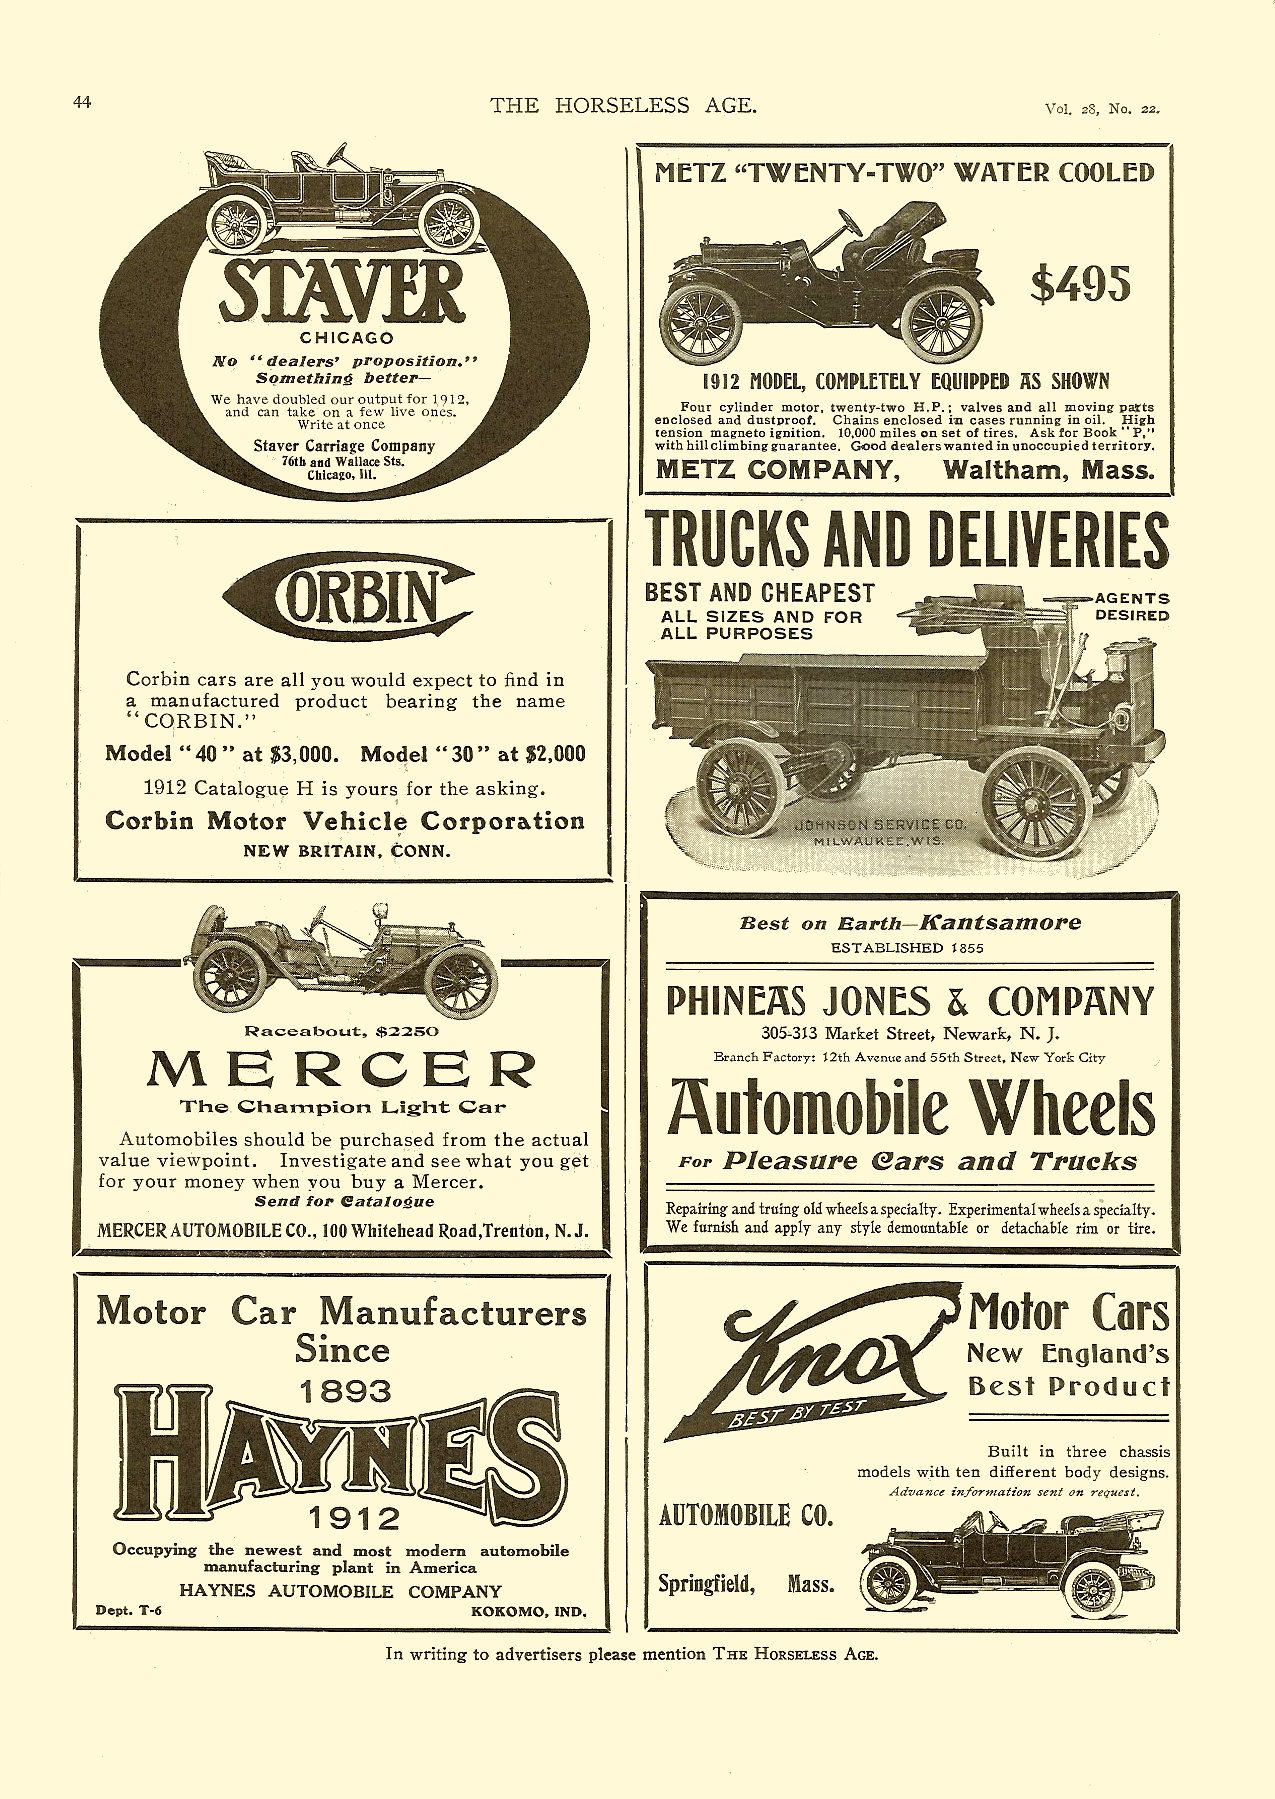 1911 11 29 cars and trucks THE HORSELESS AGE Vol. 28, No. 22 November 29, 1911 9″x12″ page 44